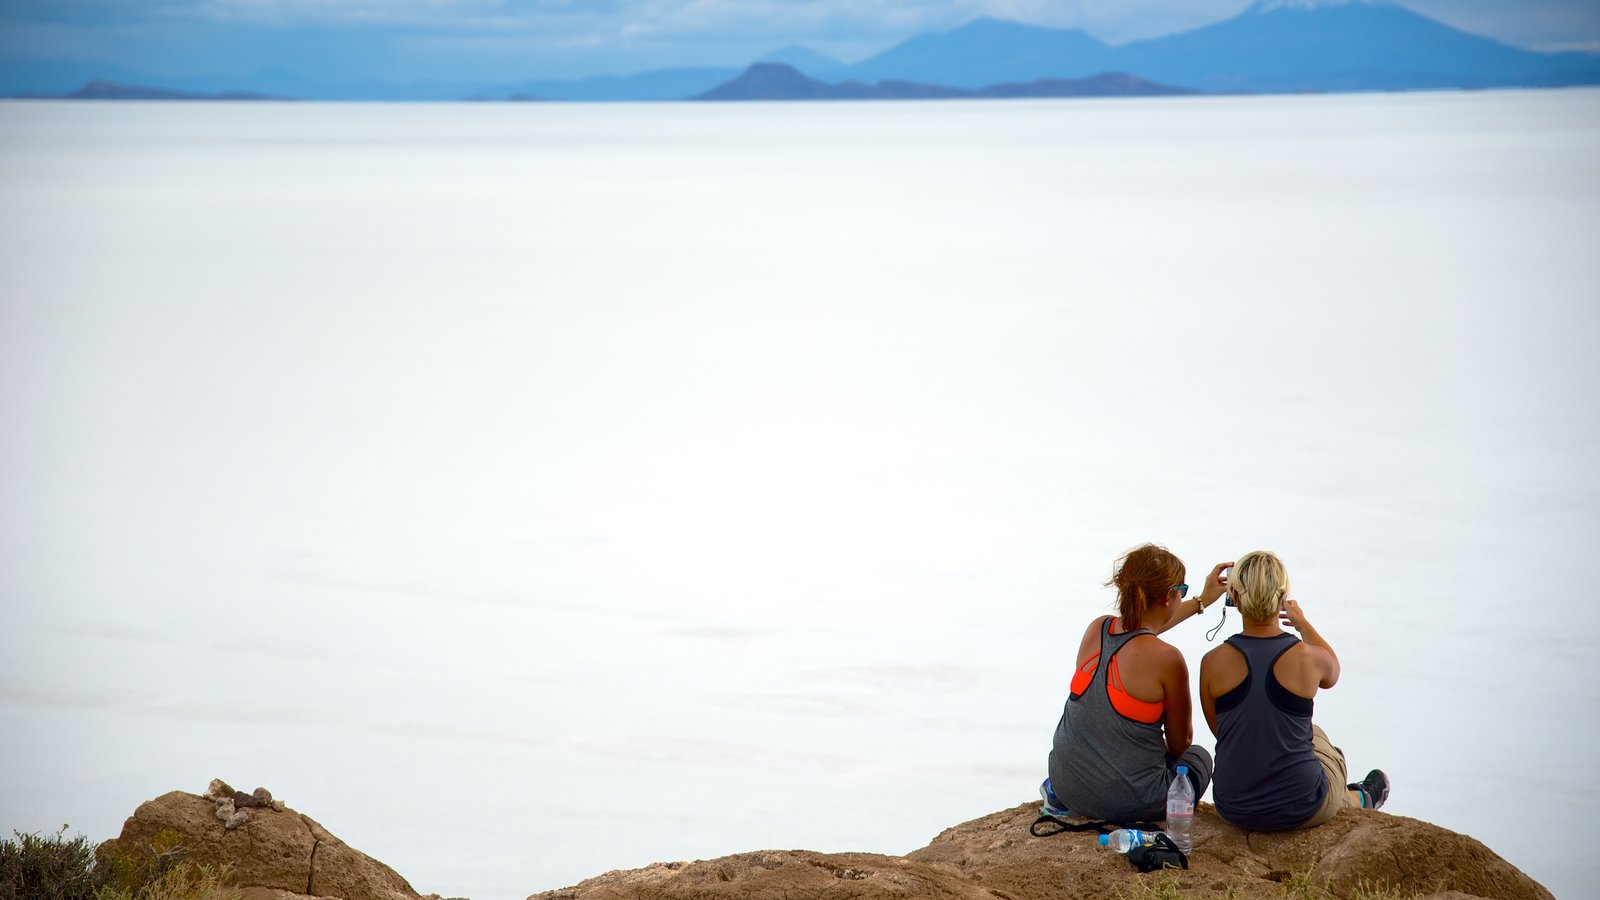 Uyuni featuring landscape views and mist or fog